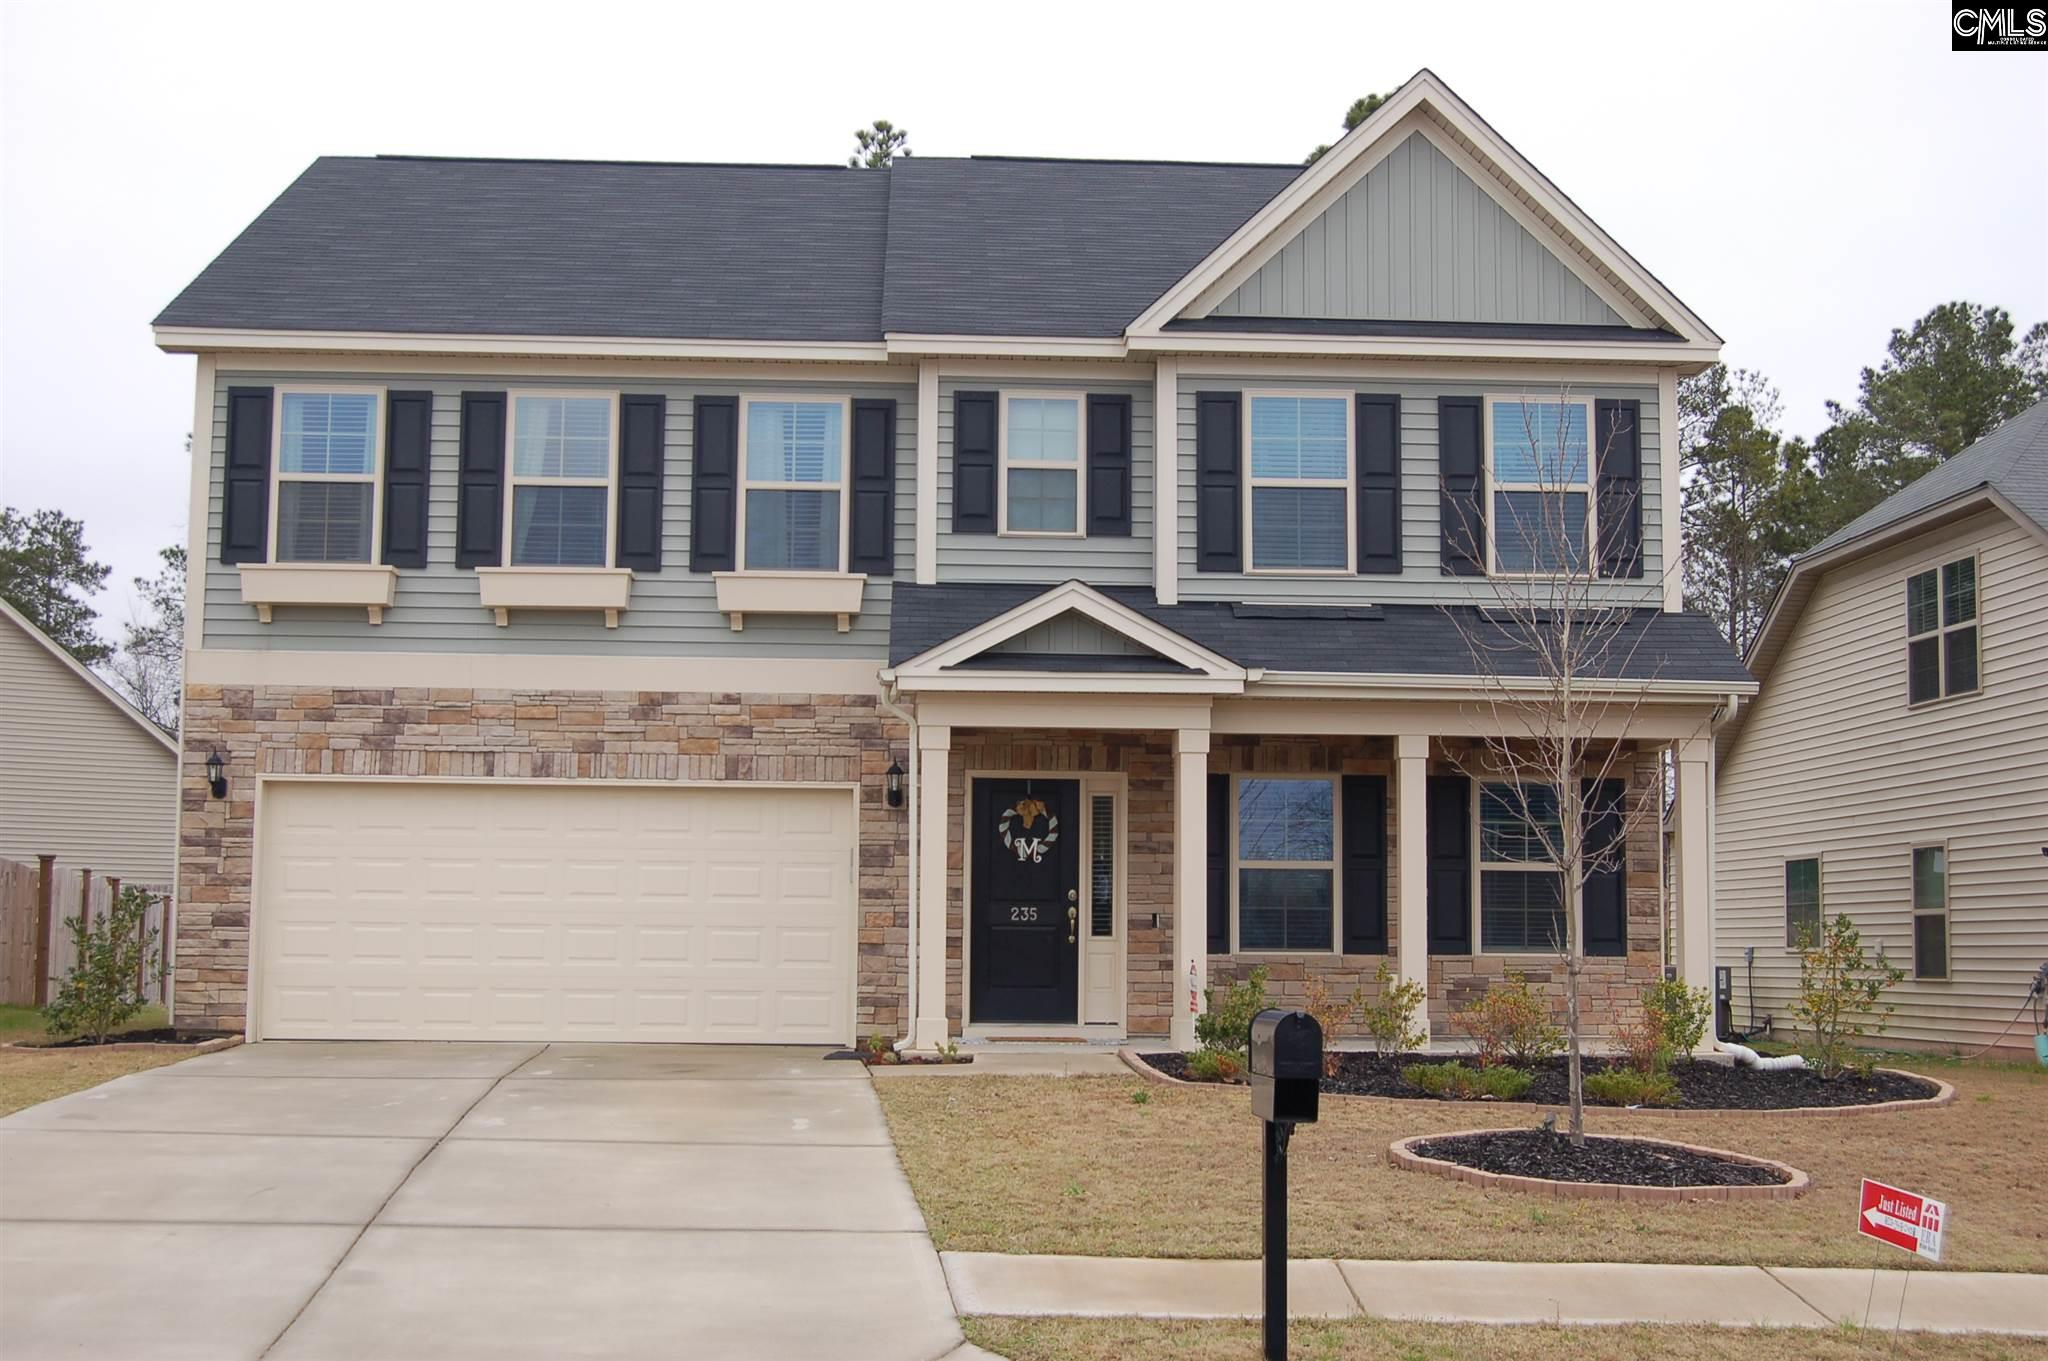 235 Meadow Springs Columbia, SC 29229